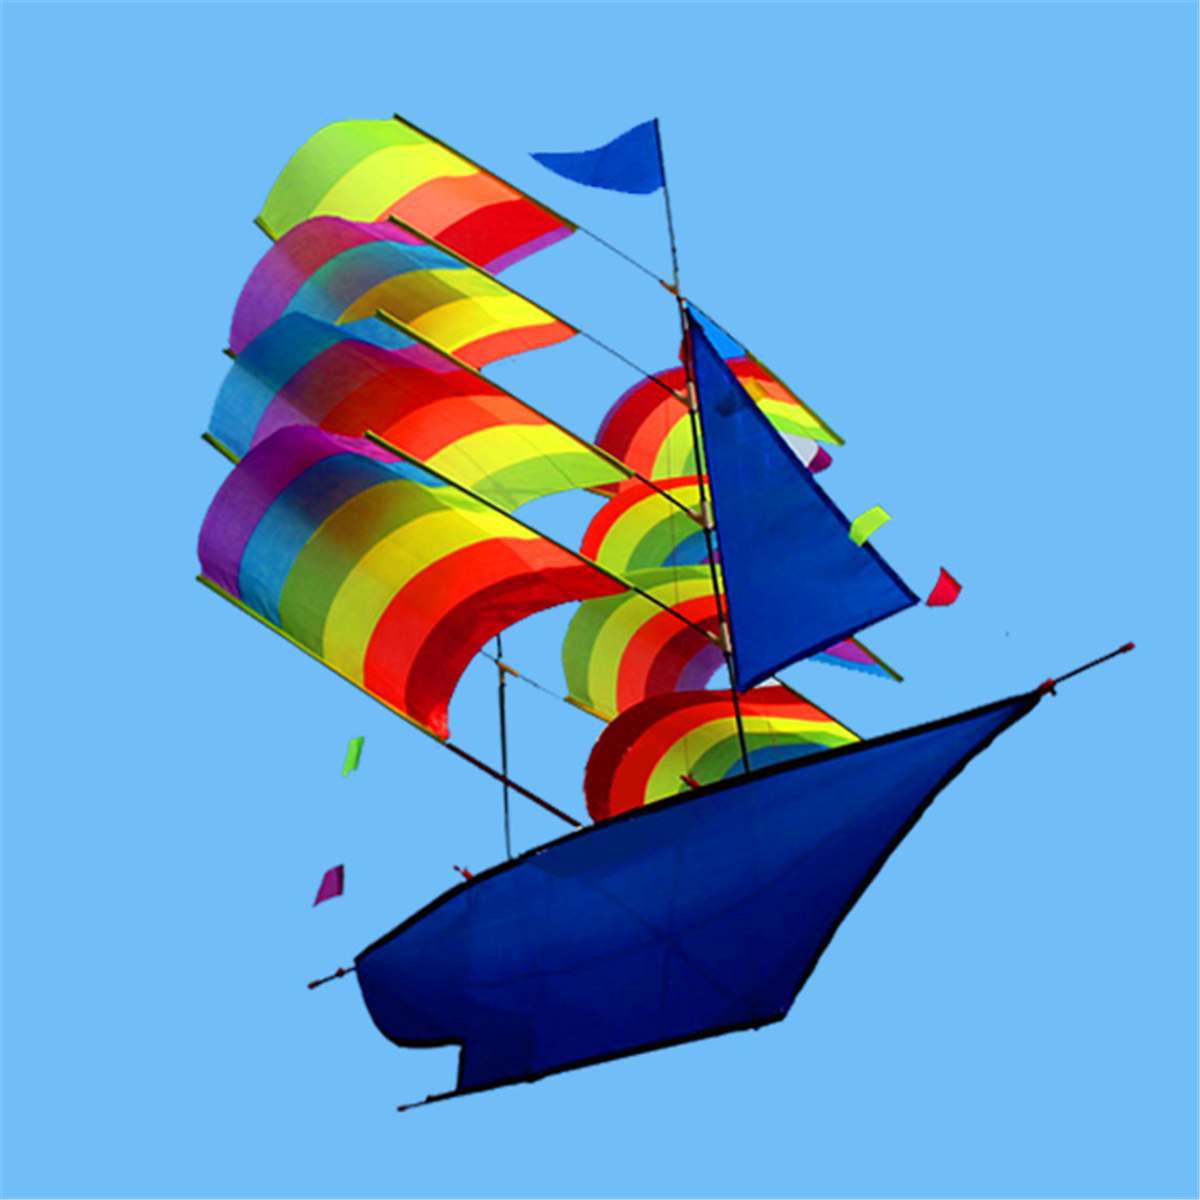 3D Rainbow Sailboat Flying Kite Large Outdoor Fun Sports Toys Children Kids Game Activity Children Gifts Colorful Ship Kites